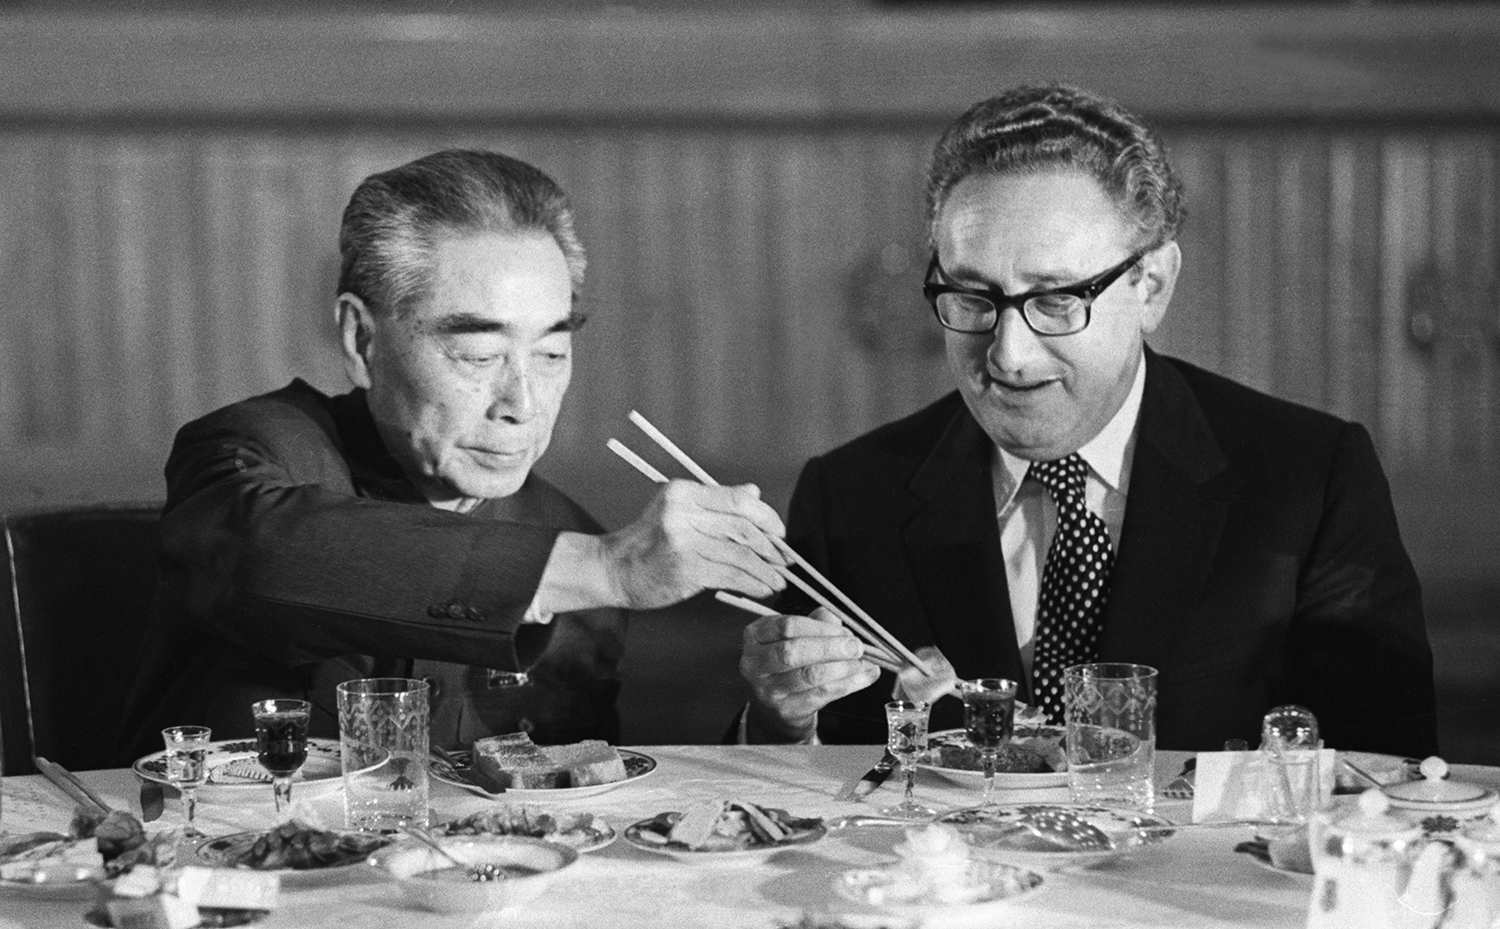 Kissinger accepts food from Chinese Premier Zhou Enlai during a state banquet in the Great Hall of the People in Beijing on Nov. 10, 1973.